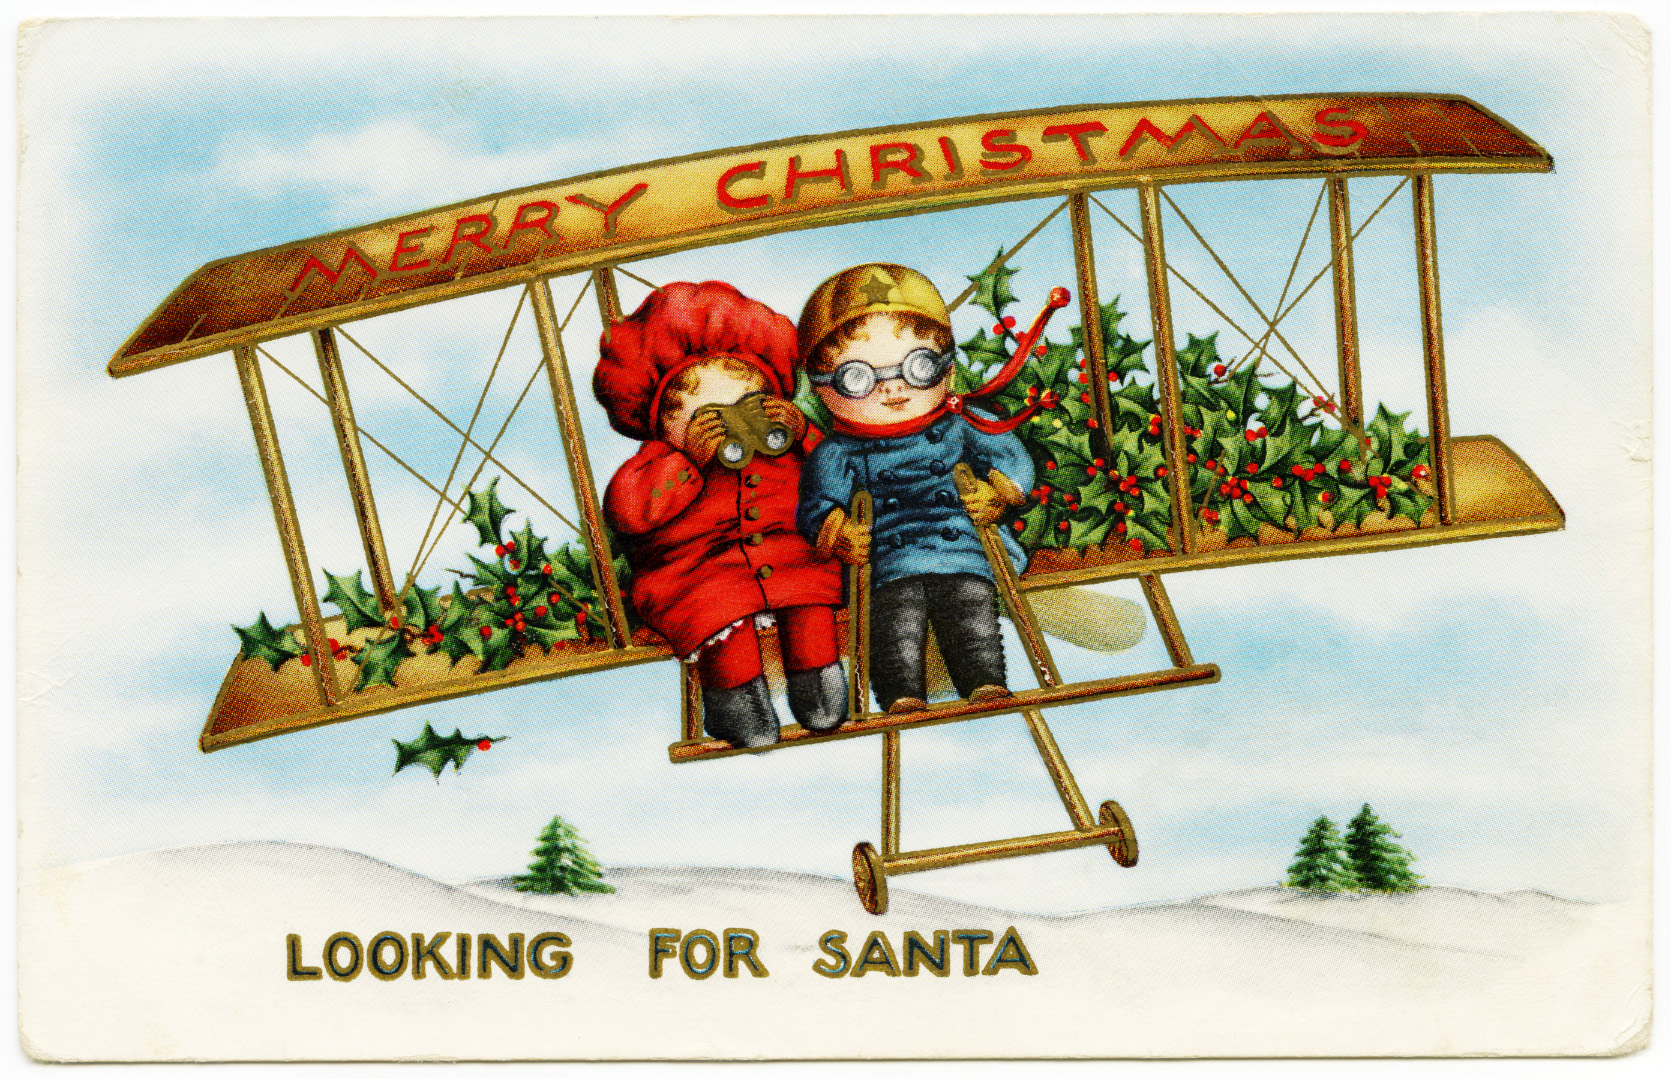 Children Looking For Santa In Plane  Old Design Shop Blog. Wooden Christmas Ornaments Personalized. Outdoor Christmas Decorations Lighted Presents. Christmas Lights Decorations Inside. Christmas Ornaments To Make With Clear Glass Balls. Christmas Tree Decorations Videos. Decorate Christmas Tree Lyrics. Christmas Lights For Sale Dallas. Paper Mache Christmas Ornaments Wholesale